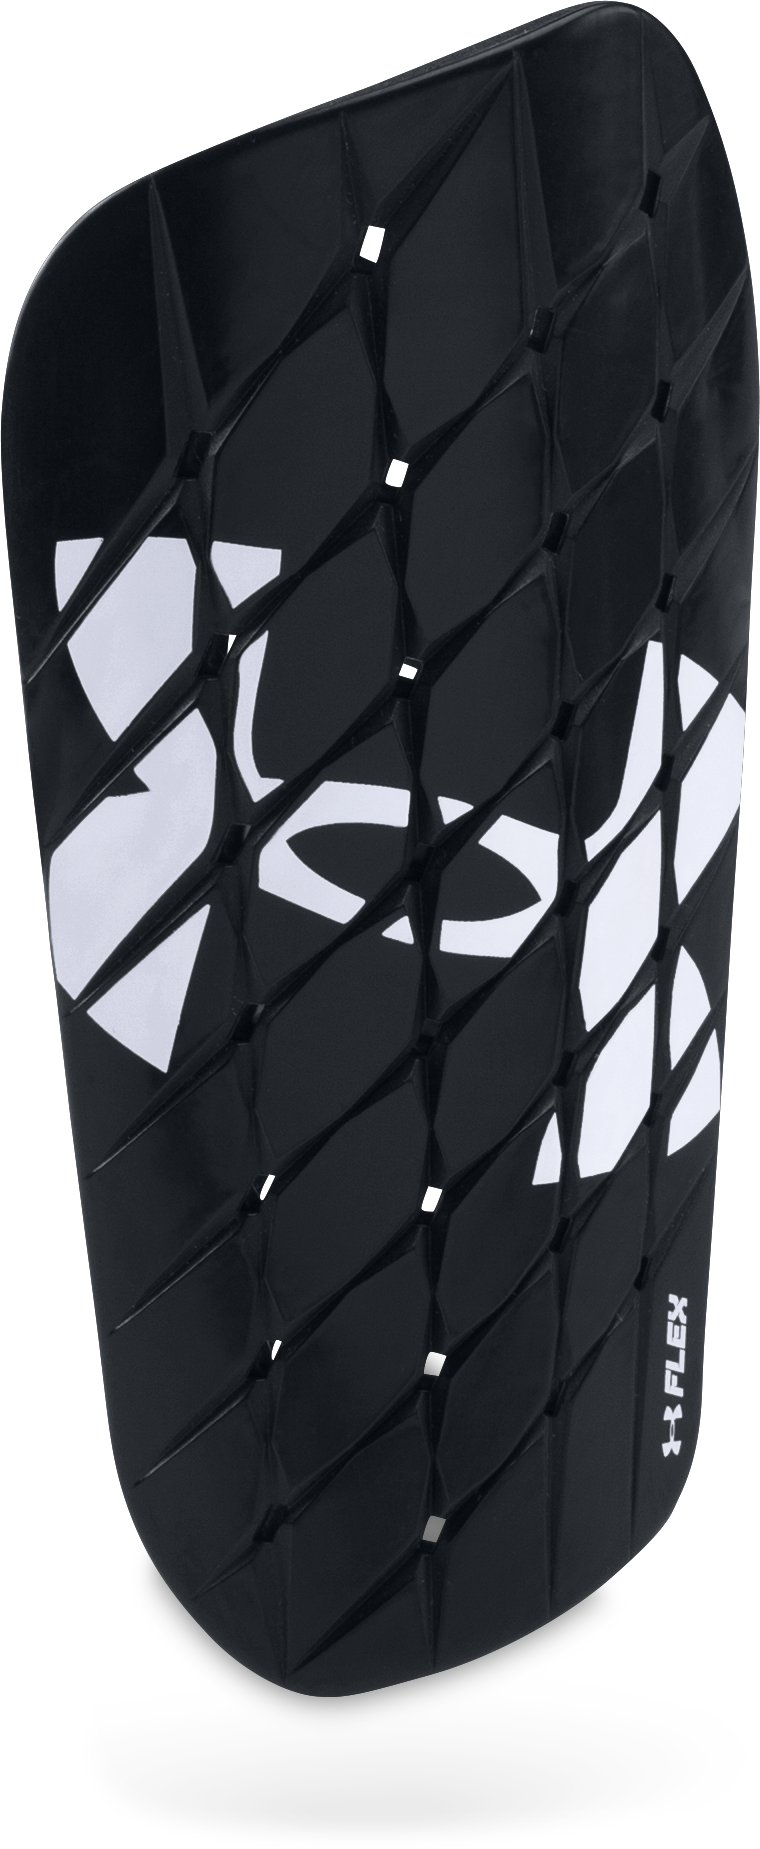 Men's UA Armour Flex Shin Guards 2 Colors $5.99 - $7.99